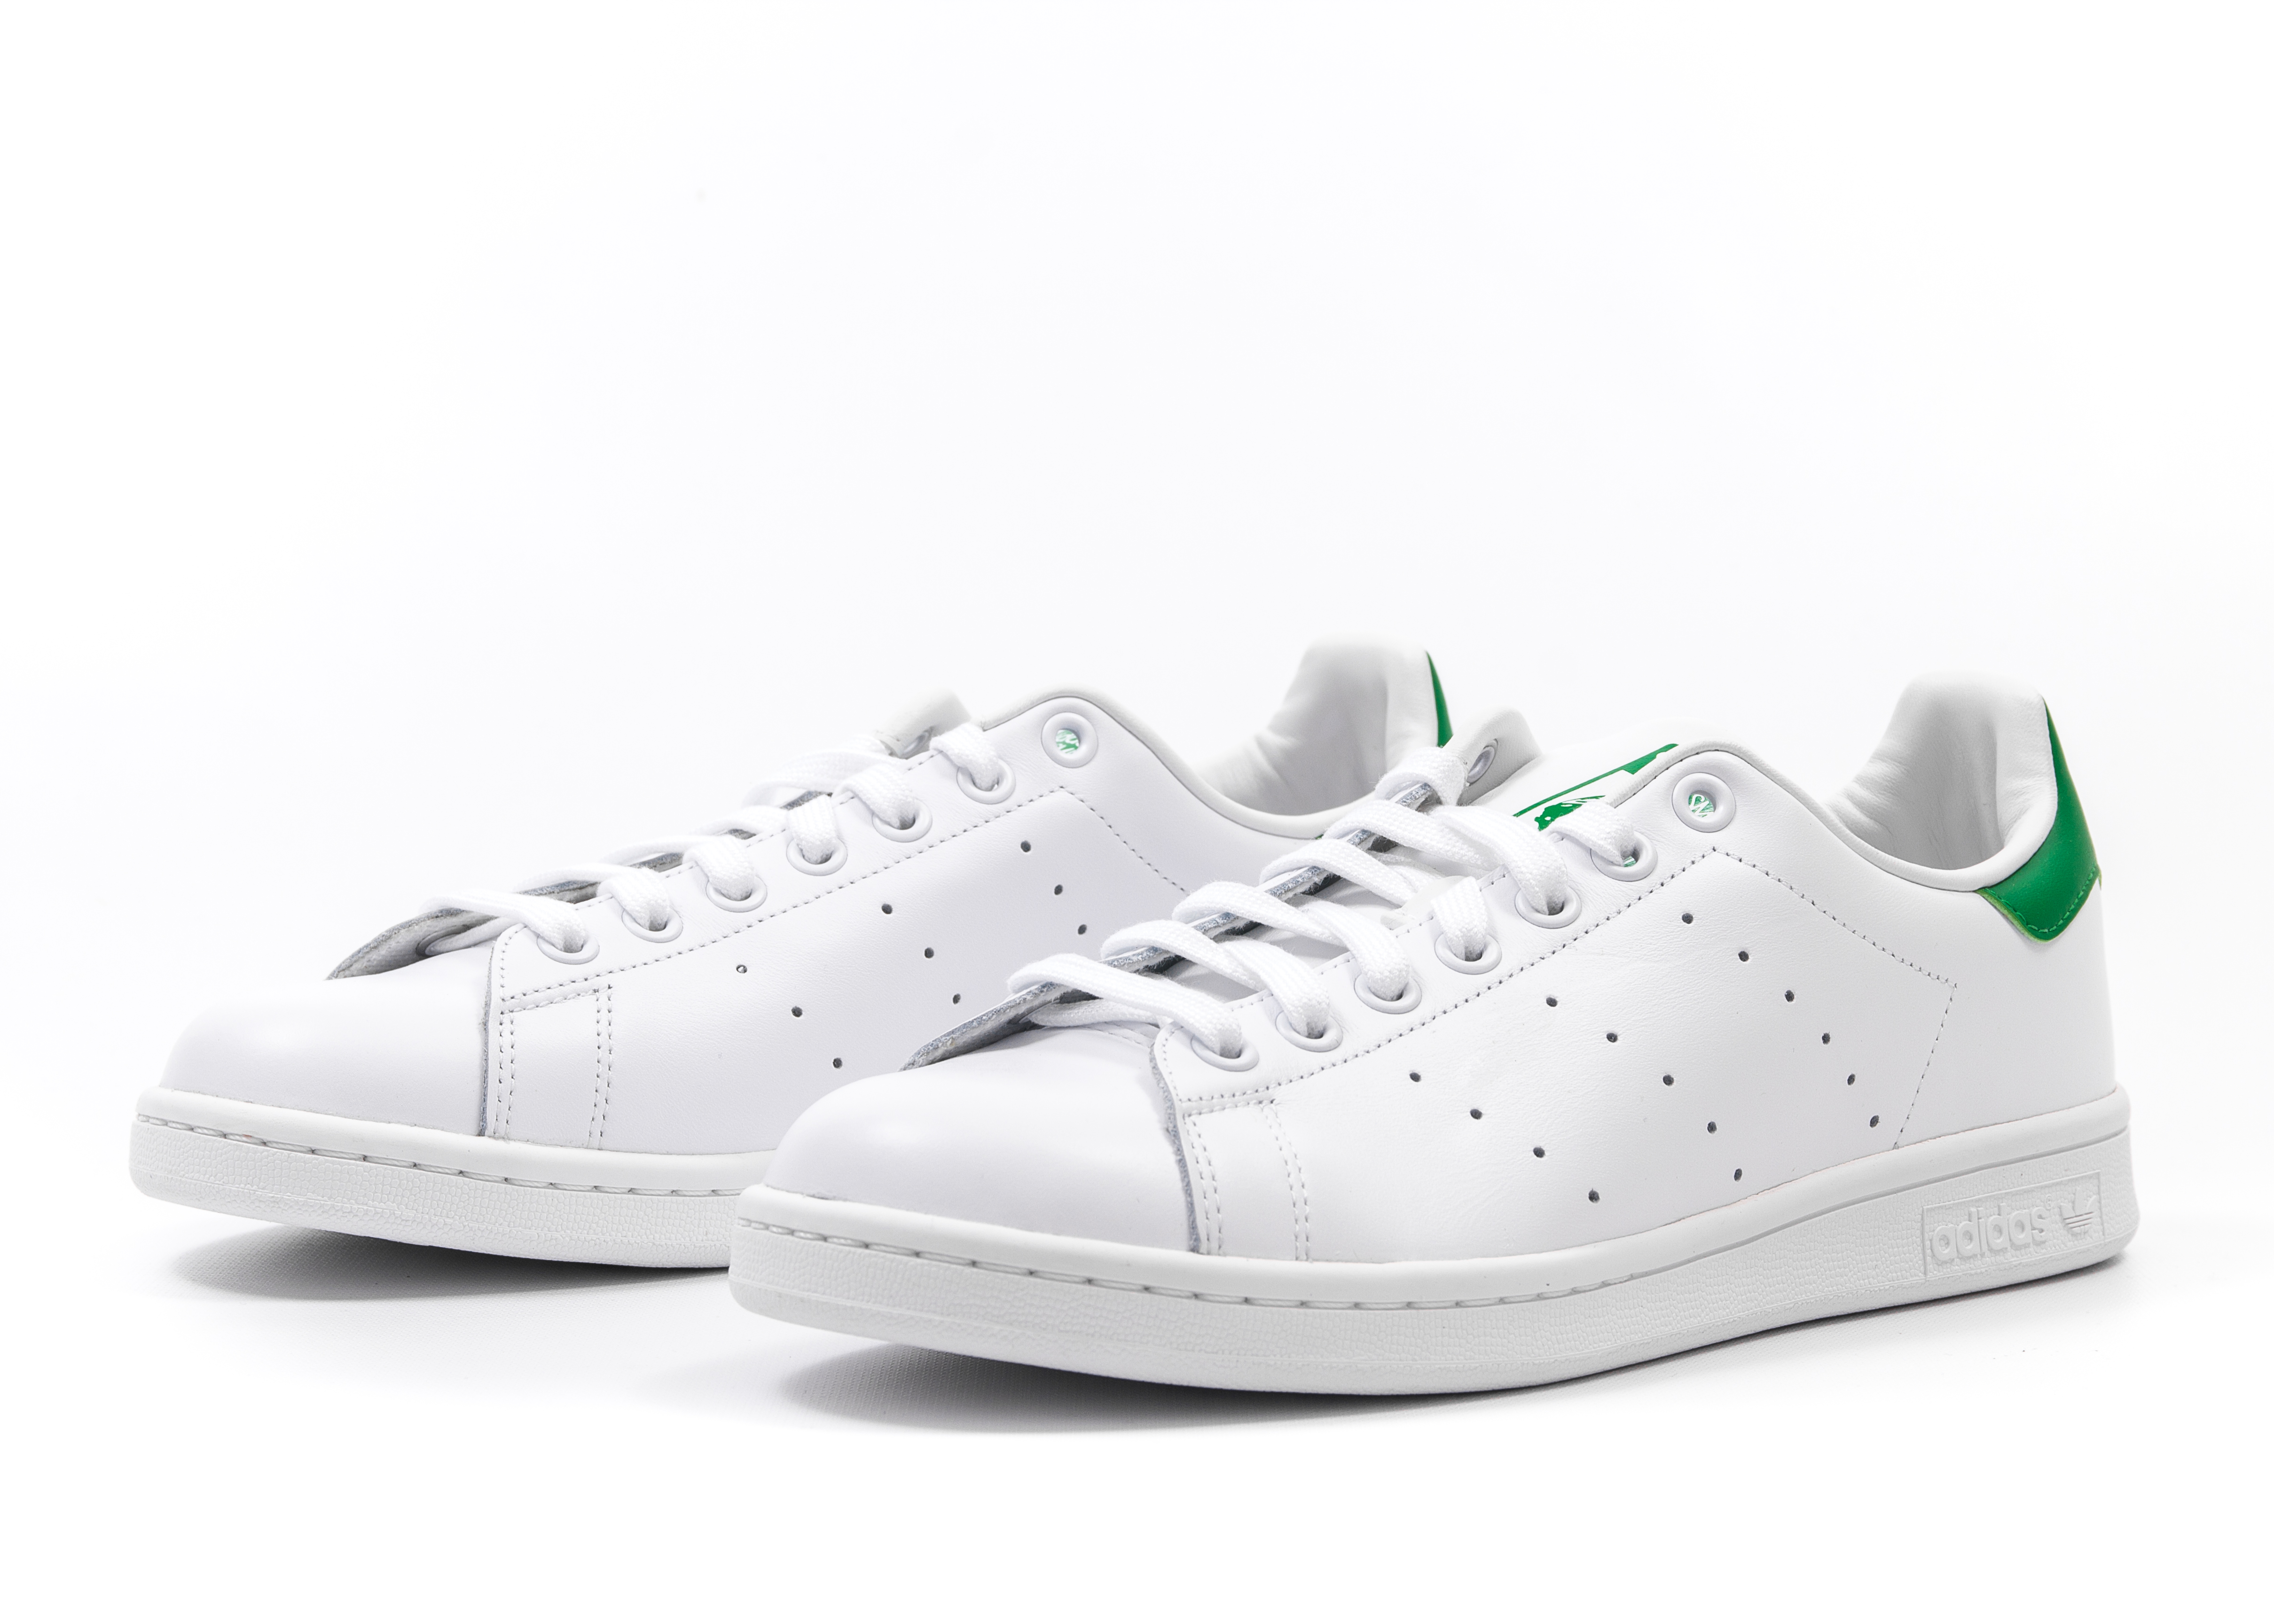 Adidas Stan Smith Colors: PACKER SHOES